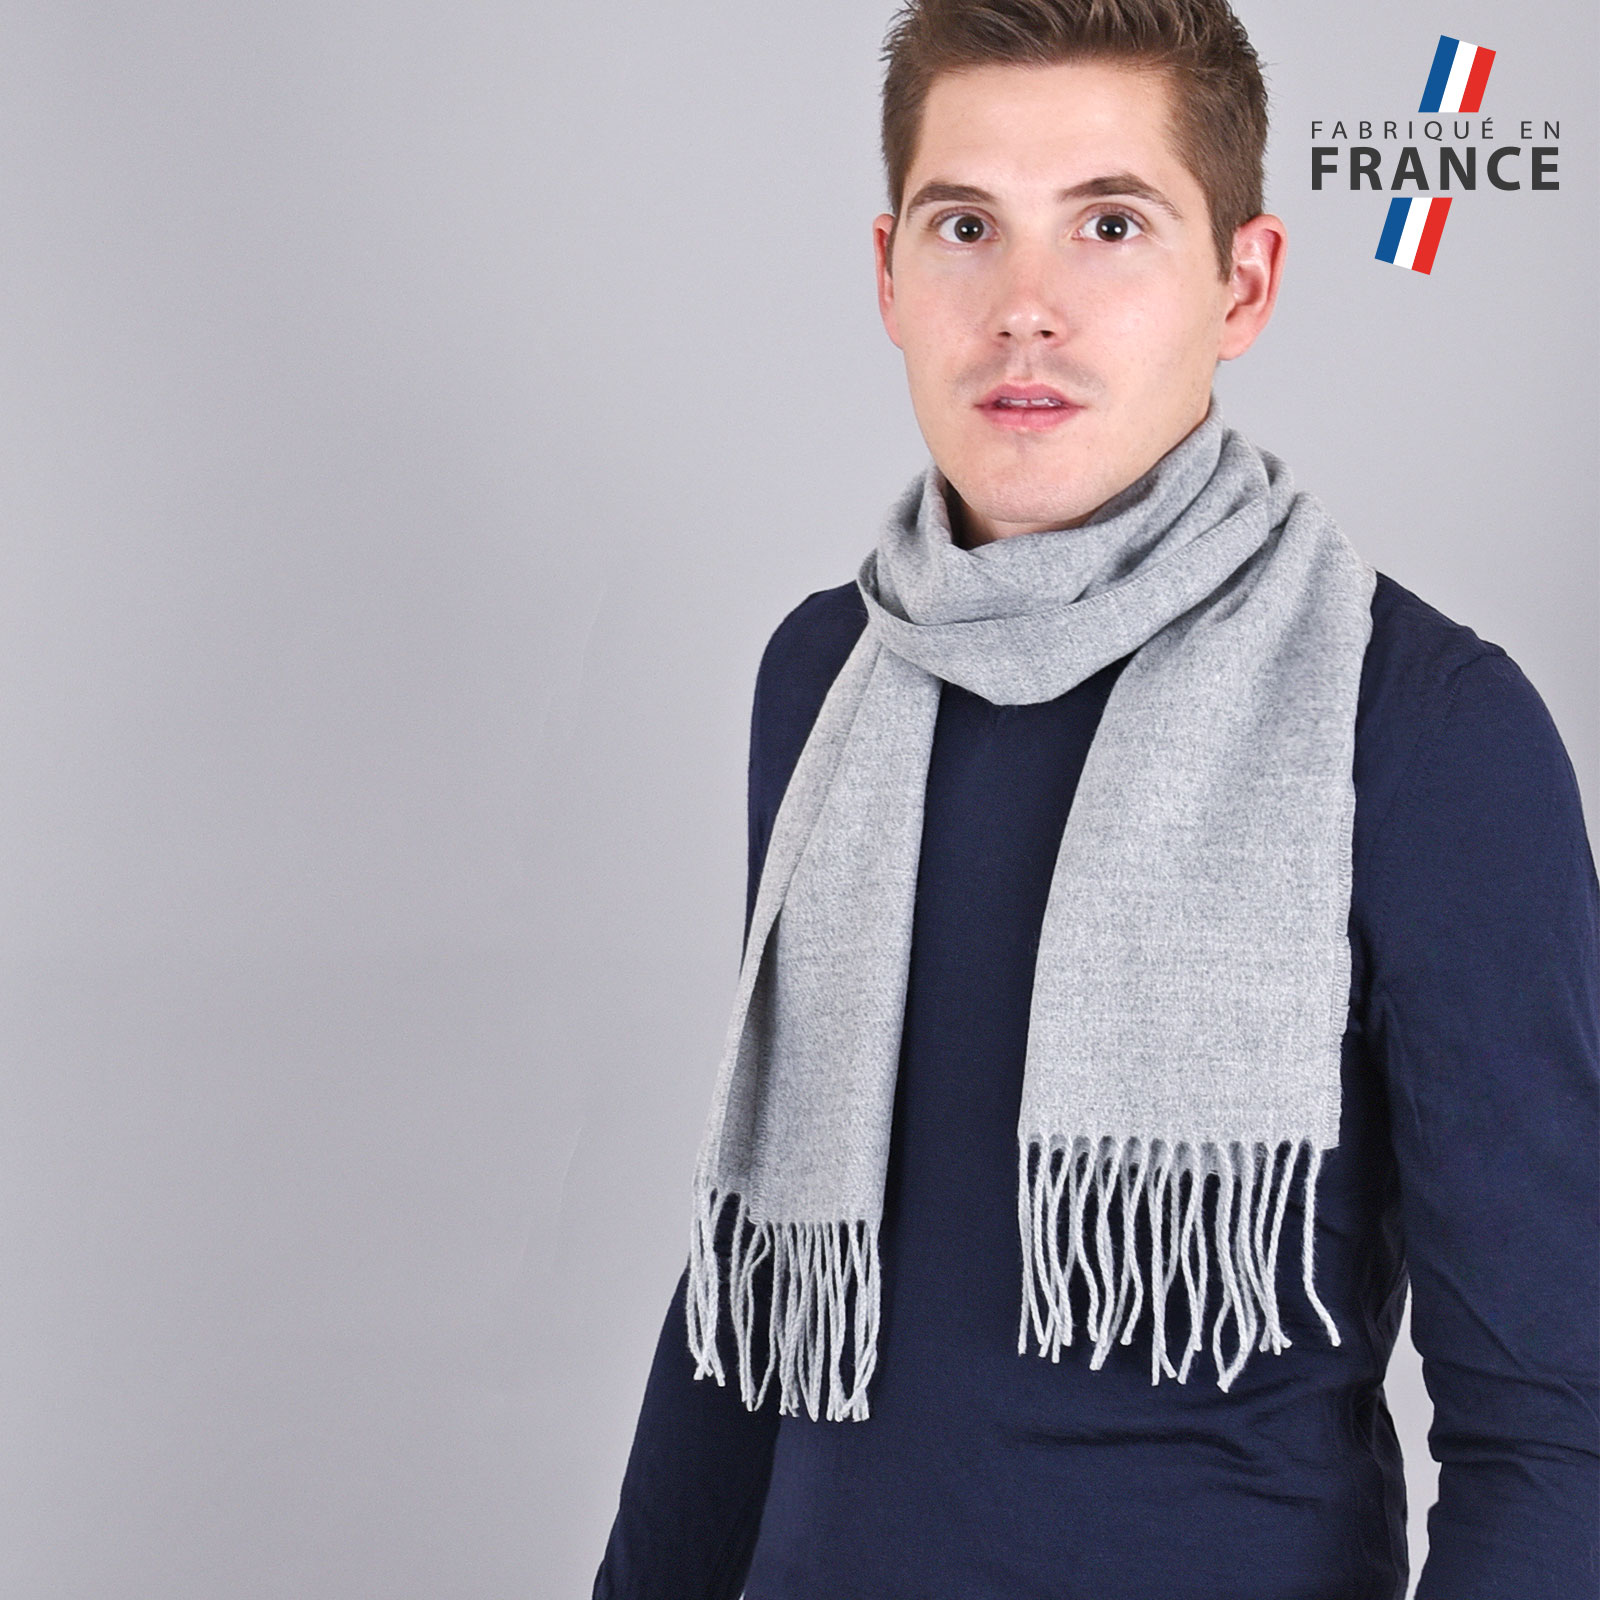 AT-03232-VH16-LB_FR-echarpe-homme-a-franges-grise-fabrication-francaise